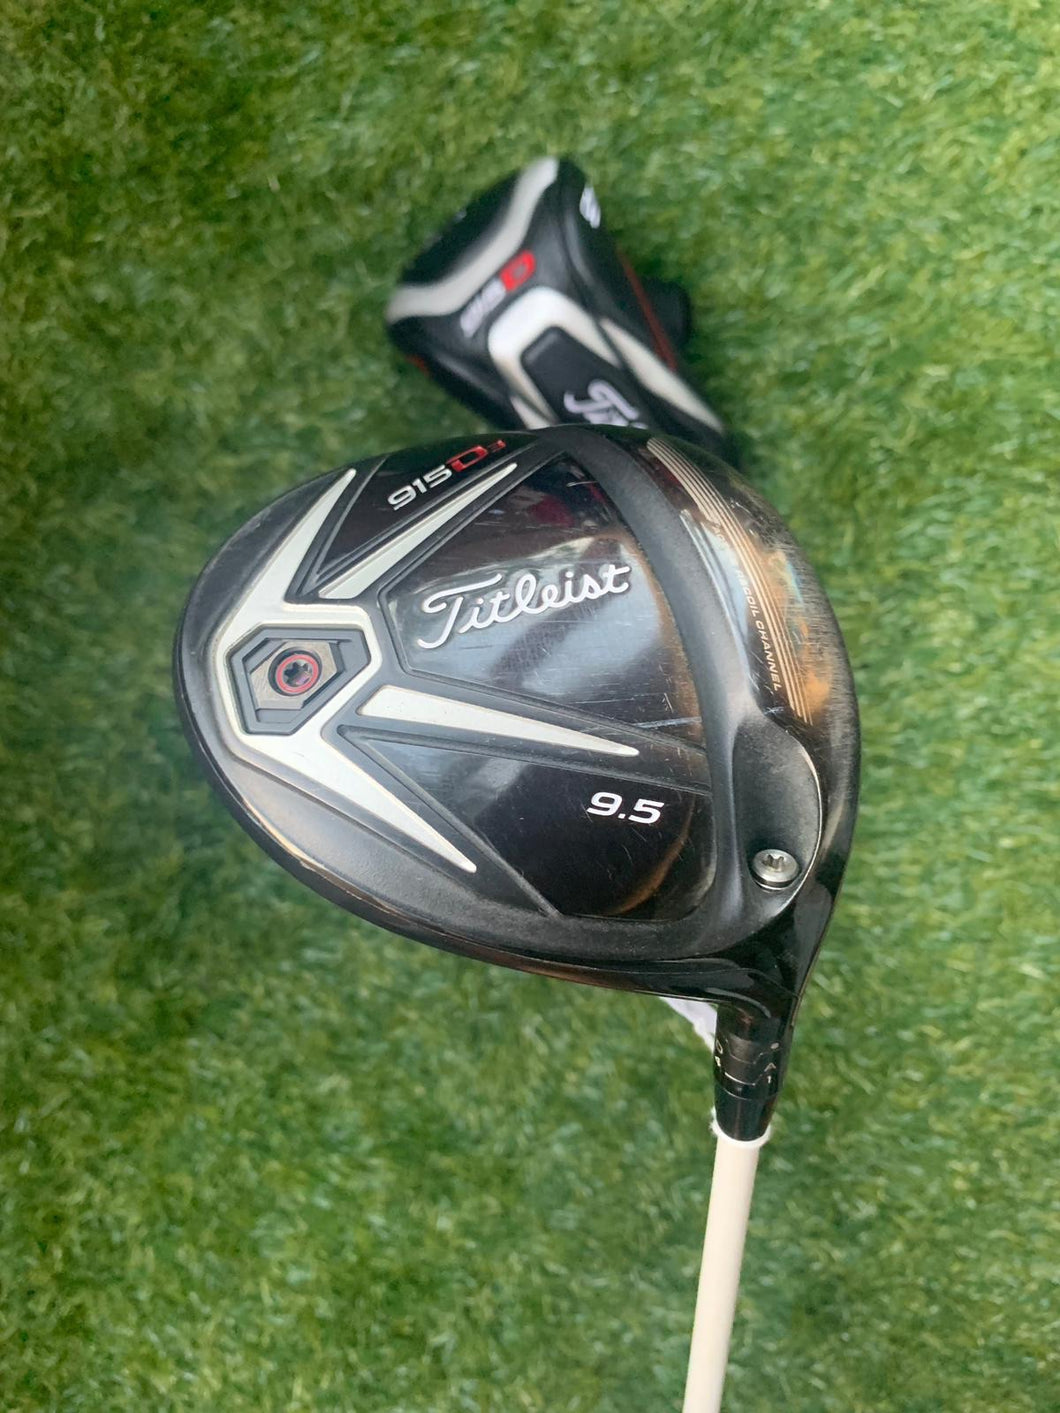 Titleist 915 D3 9.5* Driver, RH, Aldila Rogue 110 MSI Stiff Shaft- Very Nice Condition!!!